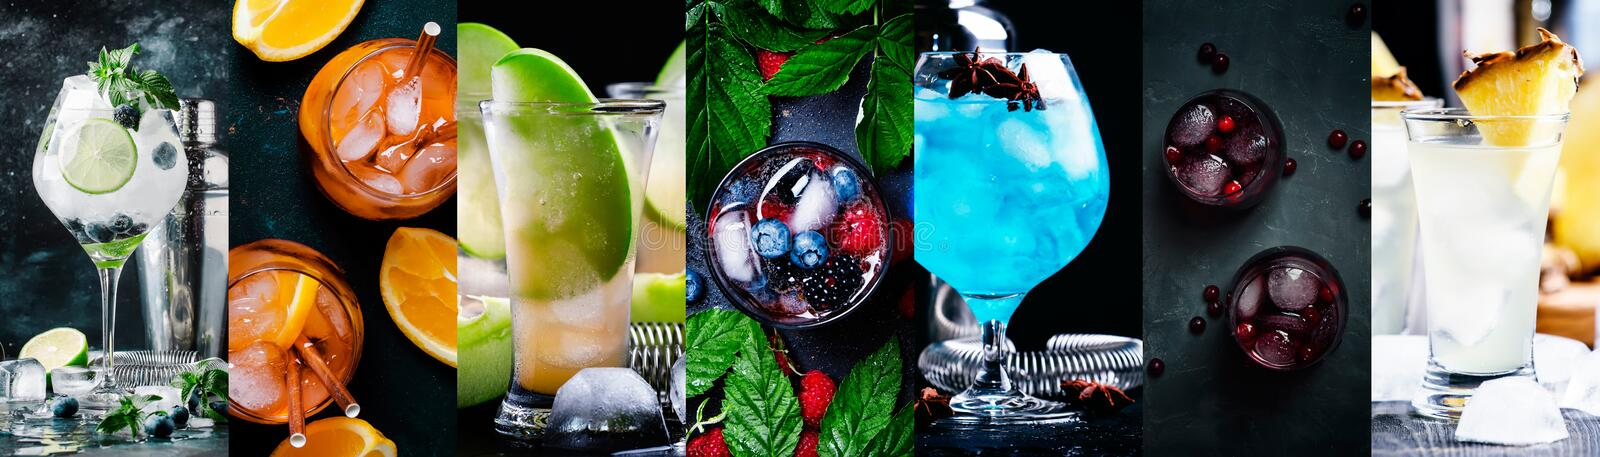 Alcoholic cocktails with strong drinks, soda, berries and fruit in assortment. Close-up. Photo collage stock images